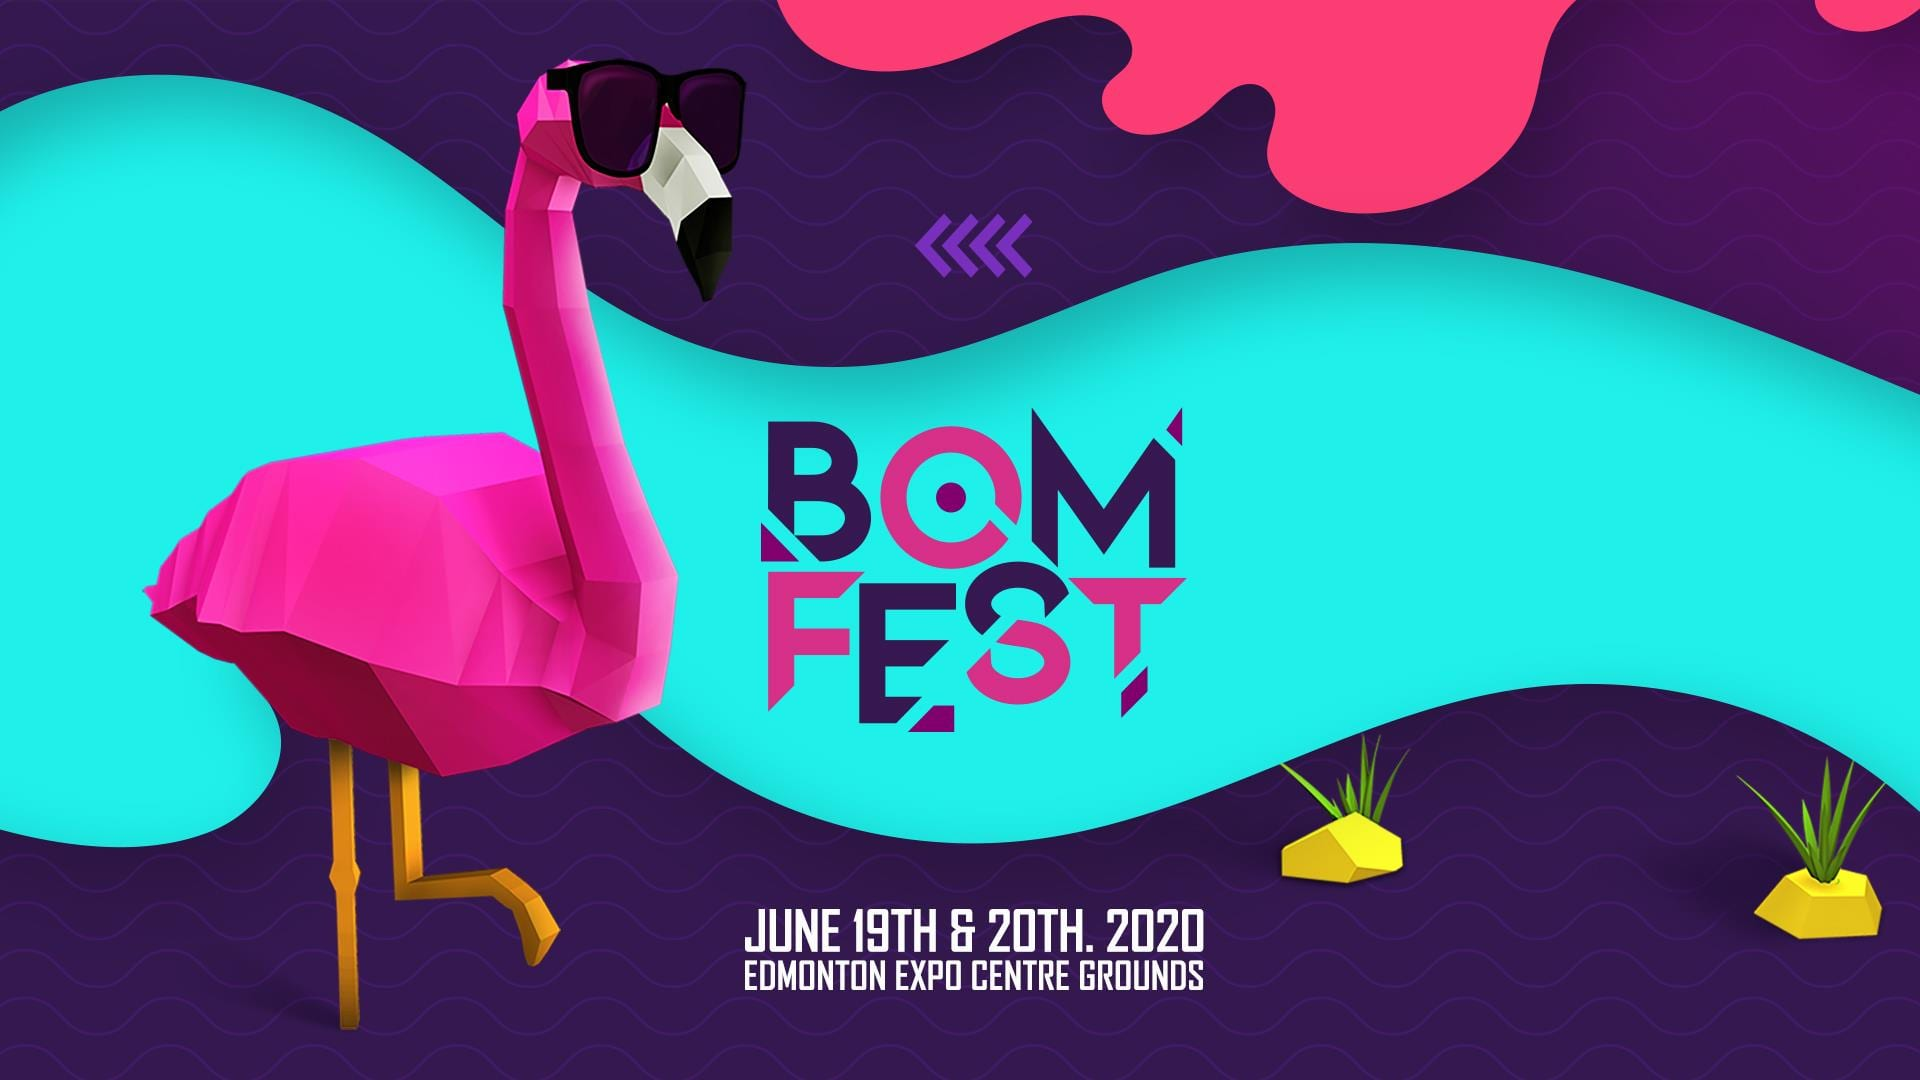 The BOMFEST cover photo, featuring a fabulous flamingo with large sunglasses.